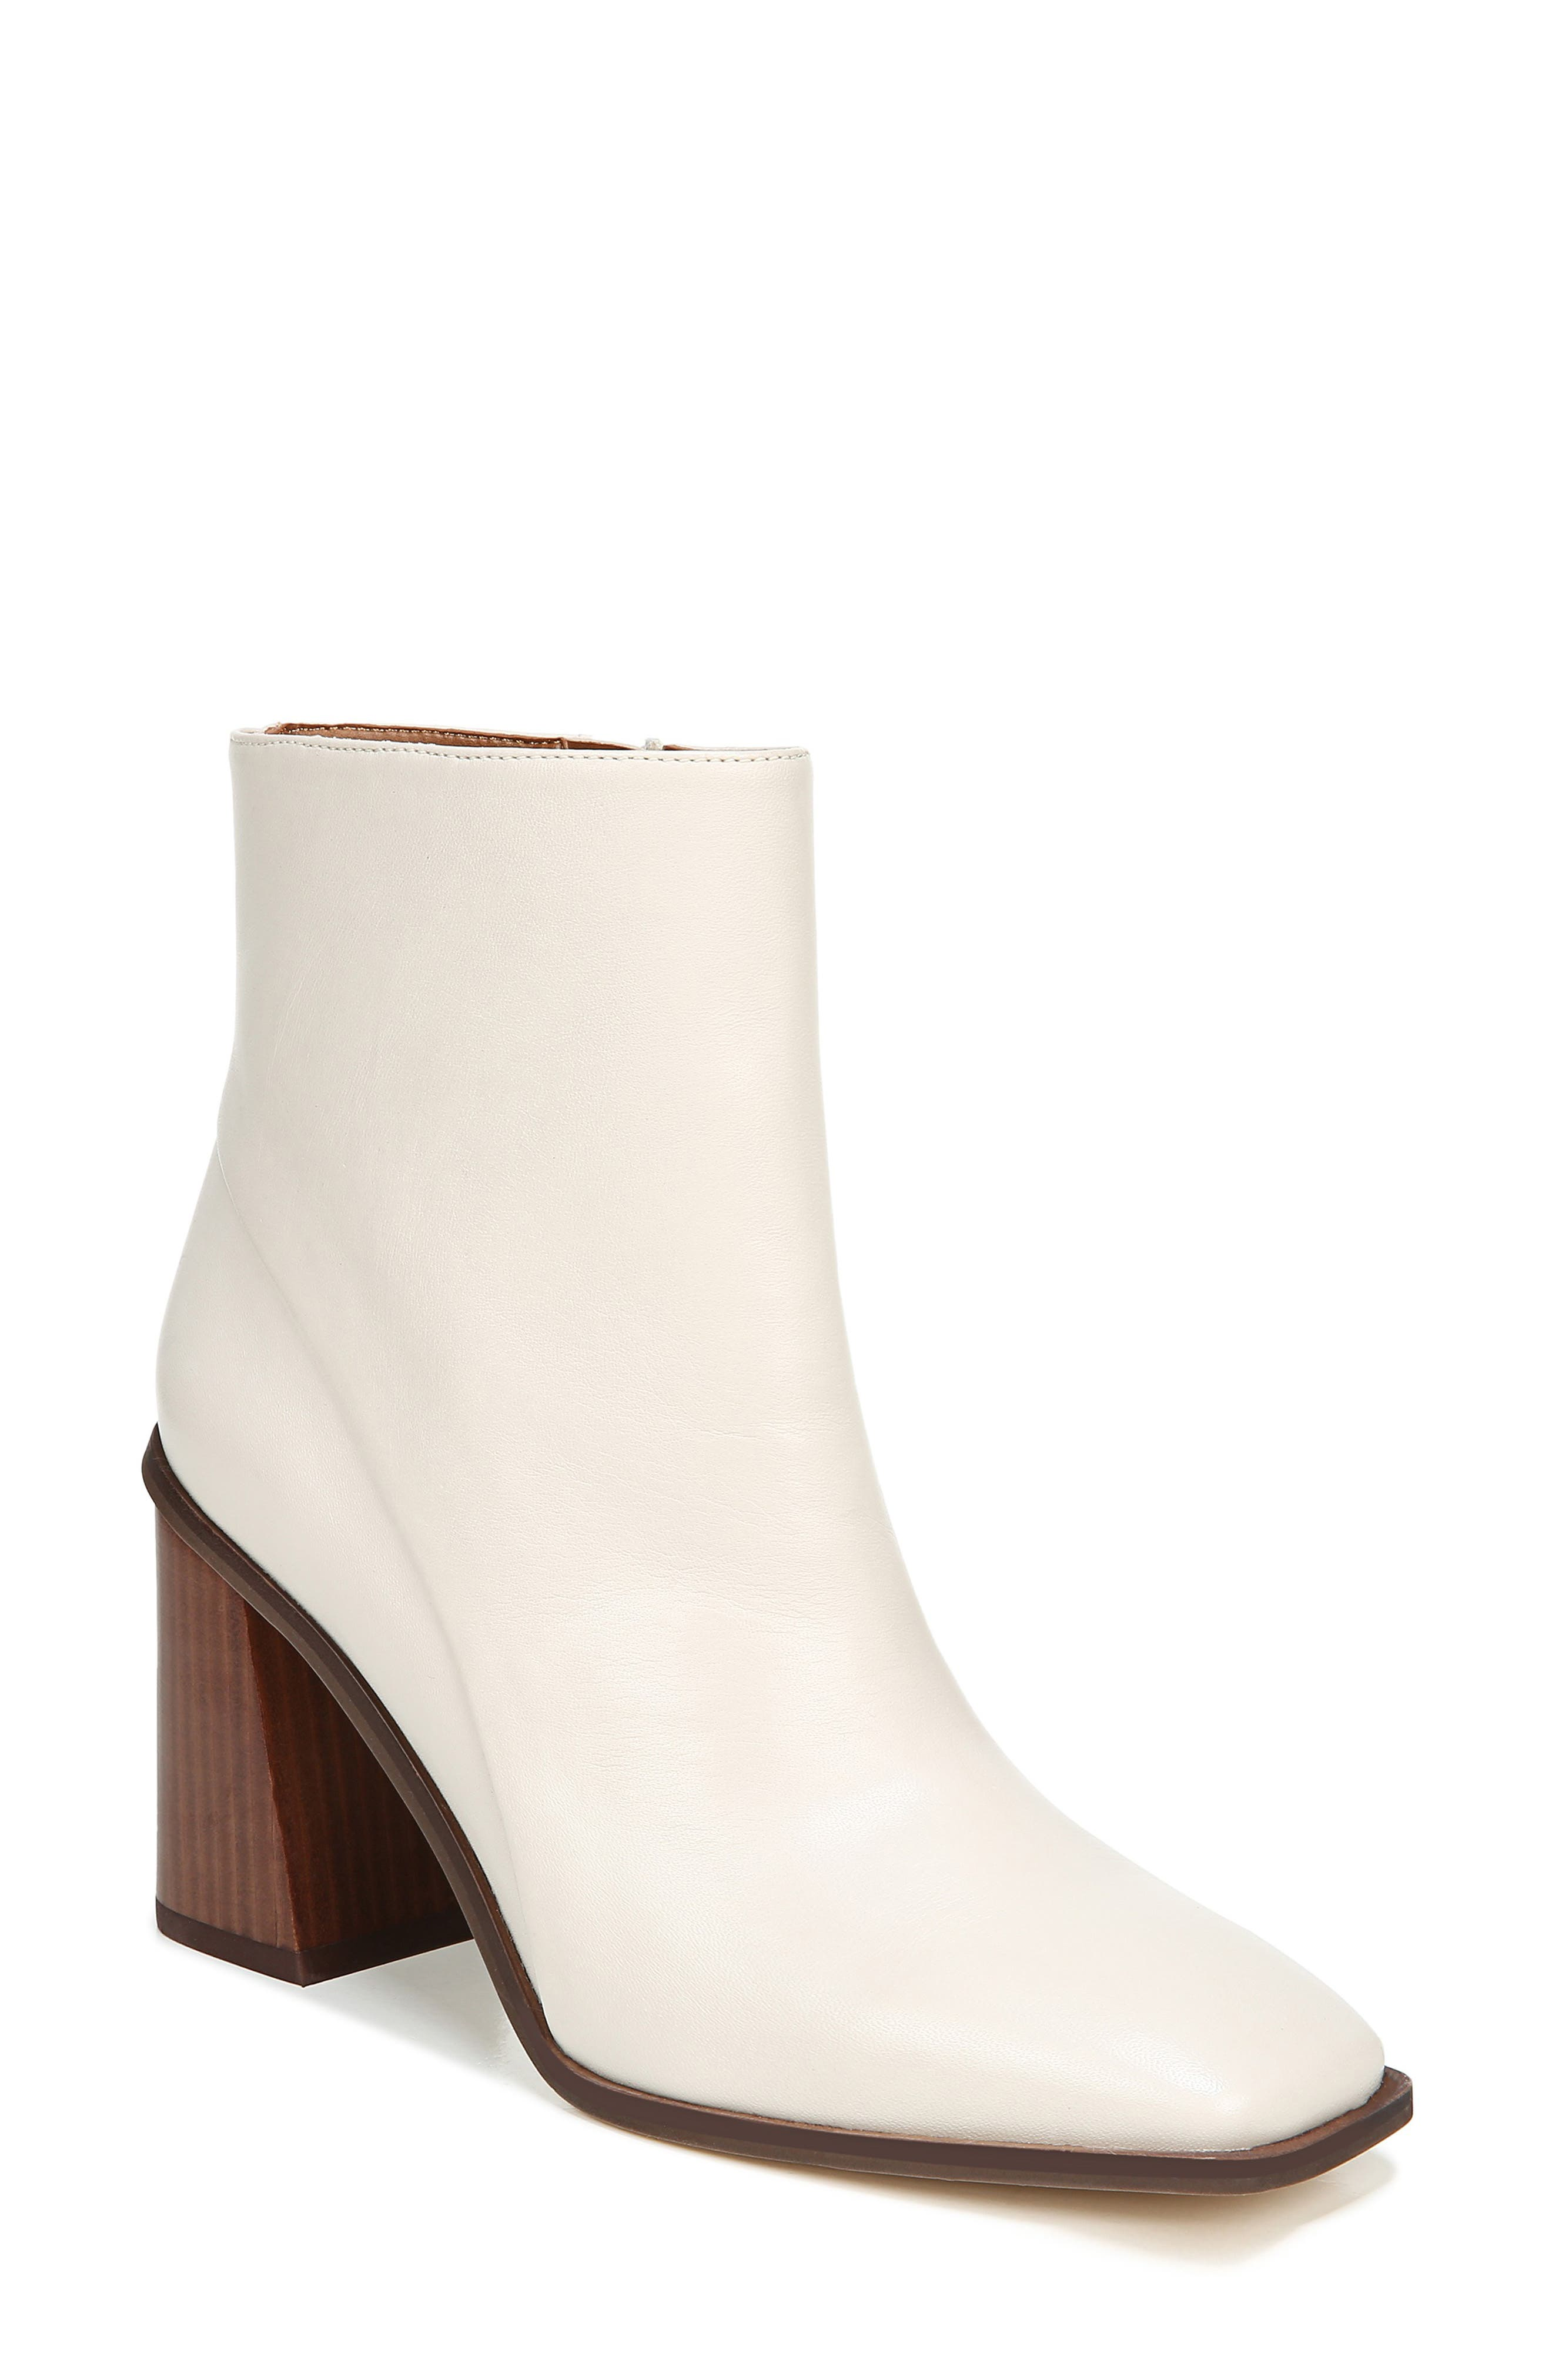 Women's Offwhite Booties \u0026 Ankle Boots